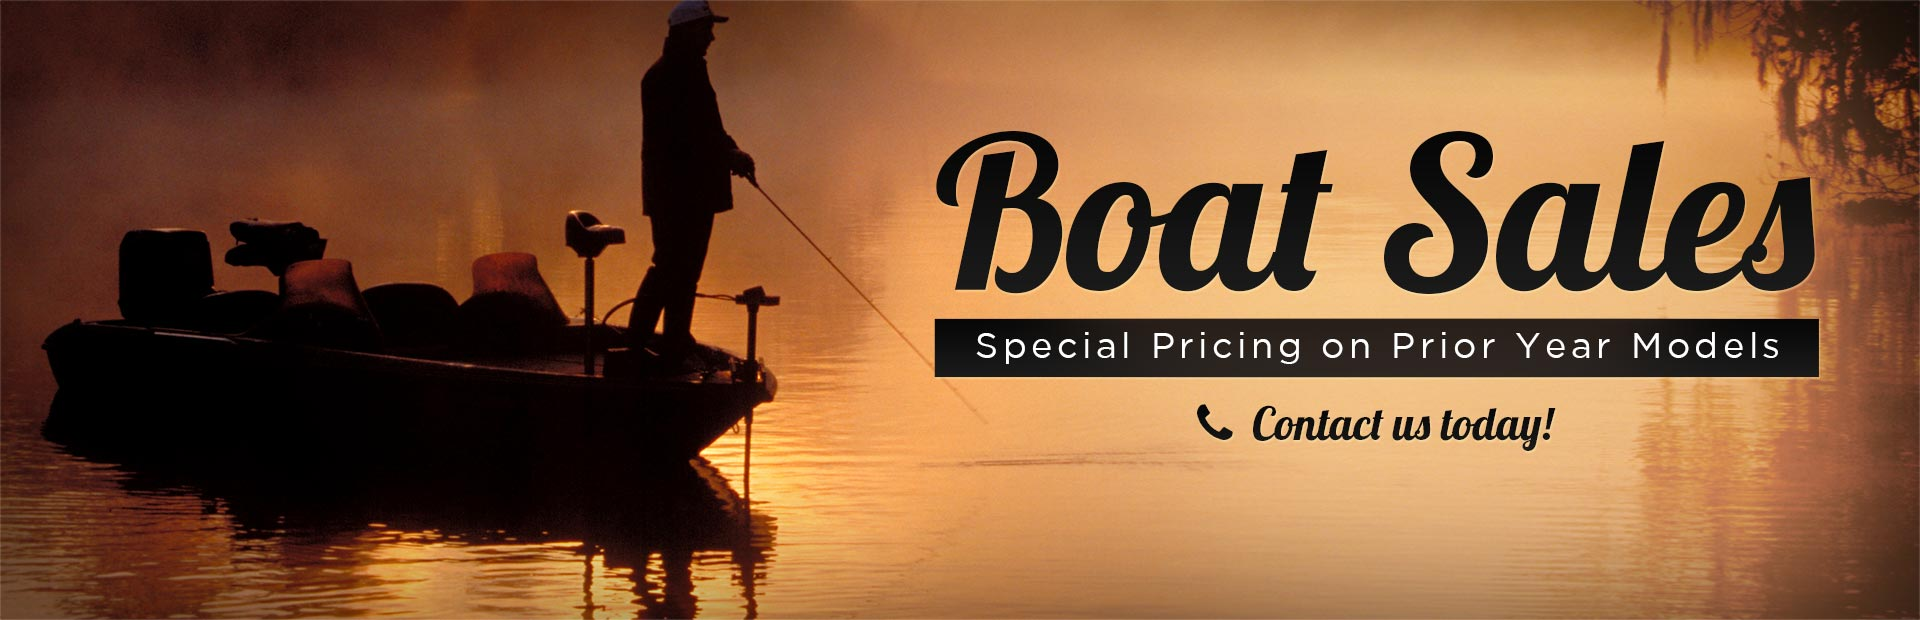 Boat Sales: Get special pricing on prior year models! Click here to contact us.